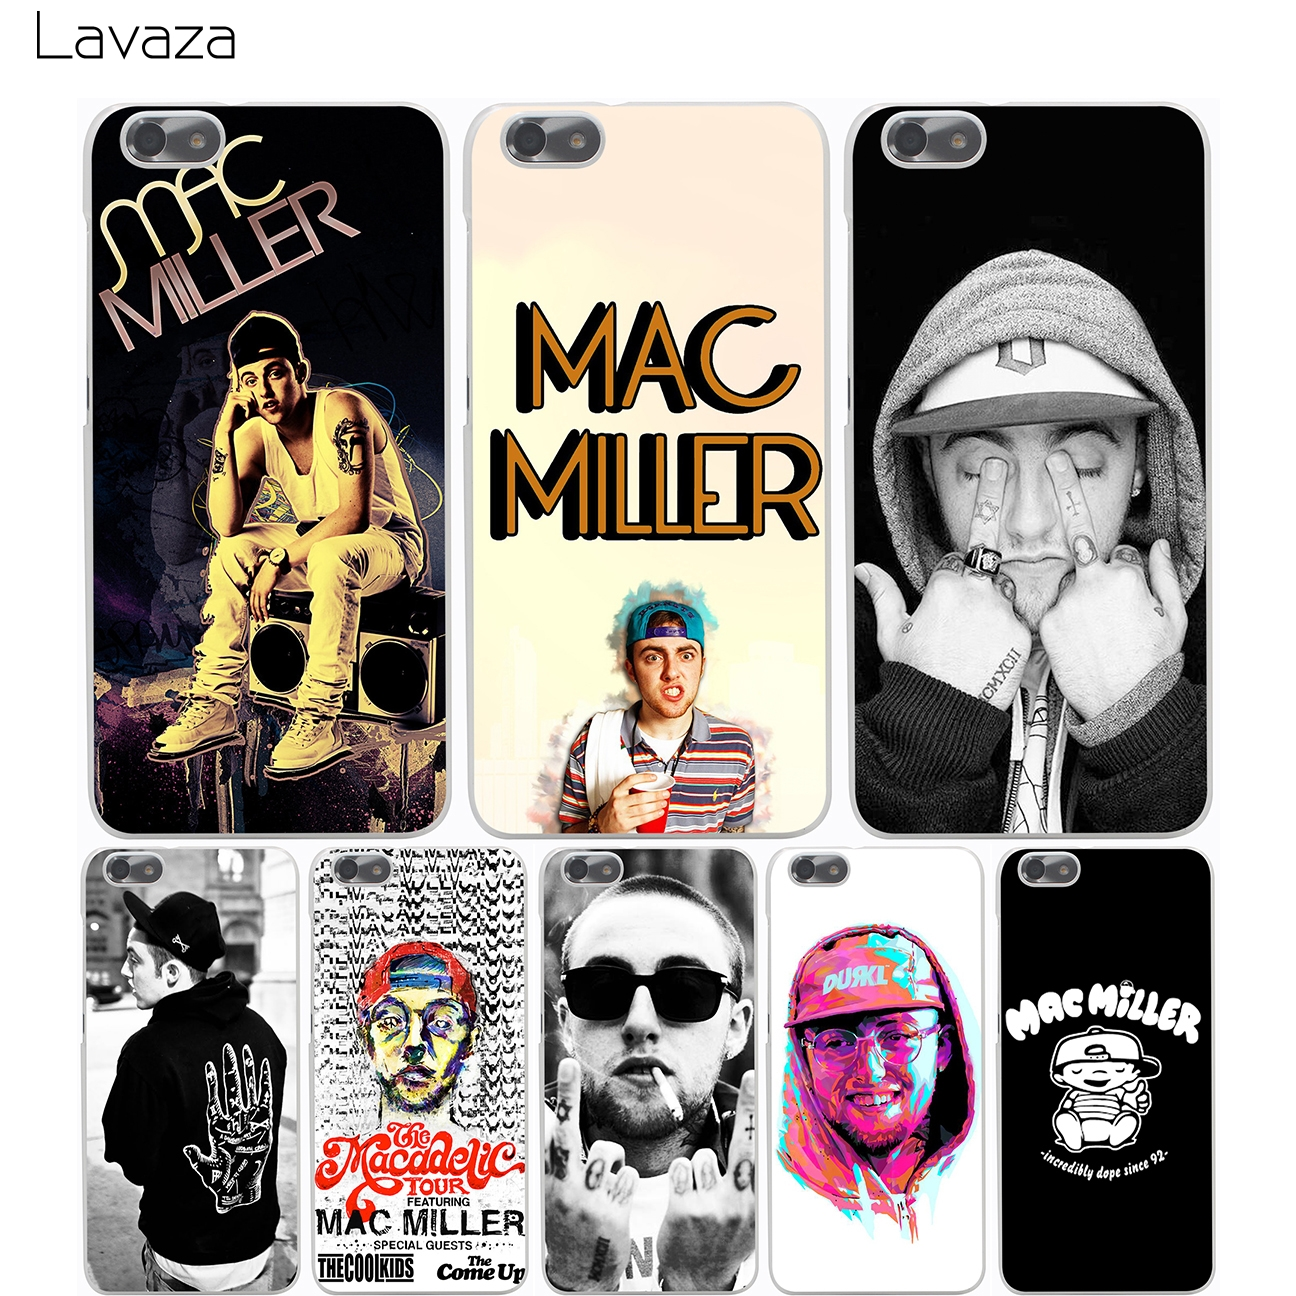 Lavaza Mac Miller Case for Huawei Honor 6a 7x 8 9 P8 P9 P10 P20 P Smart Mate 10 Lite Pro Mini 2017